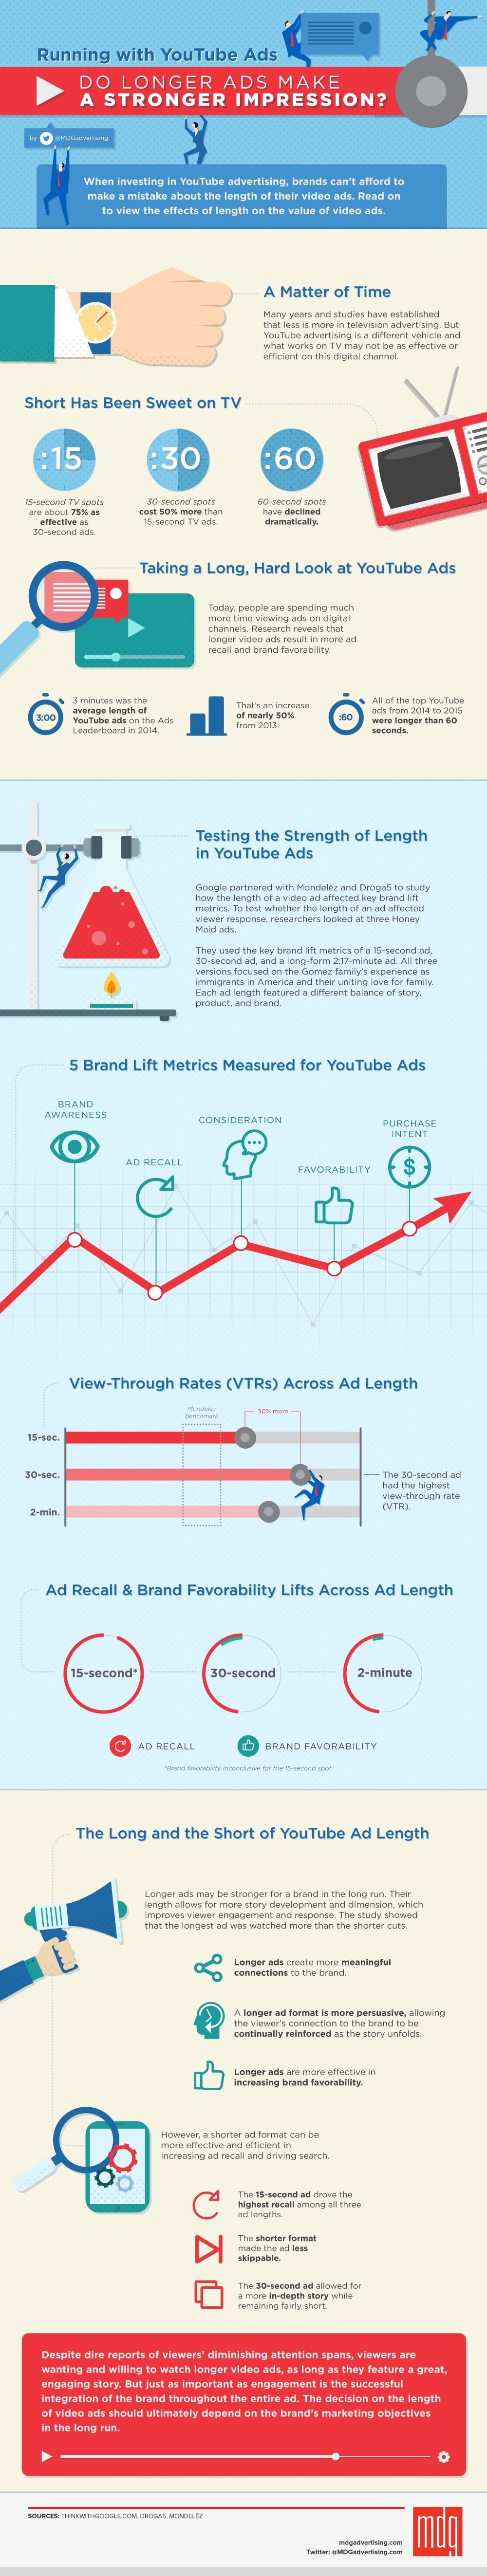 Running with YouTube Ads: Do Longer Ads Make a Stronger Impression? - #Infographic